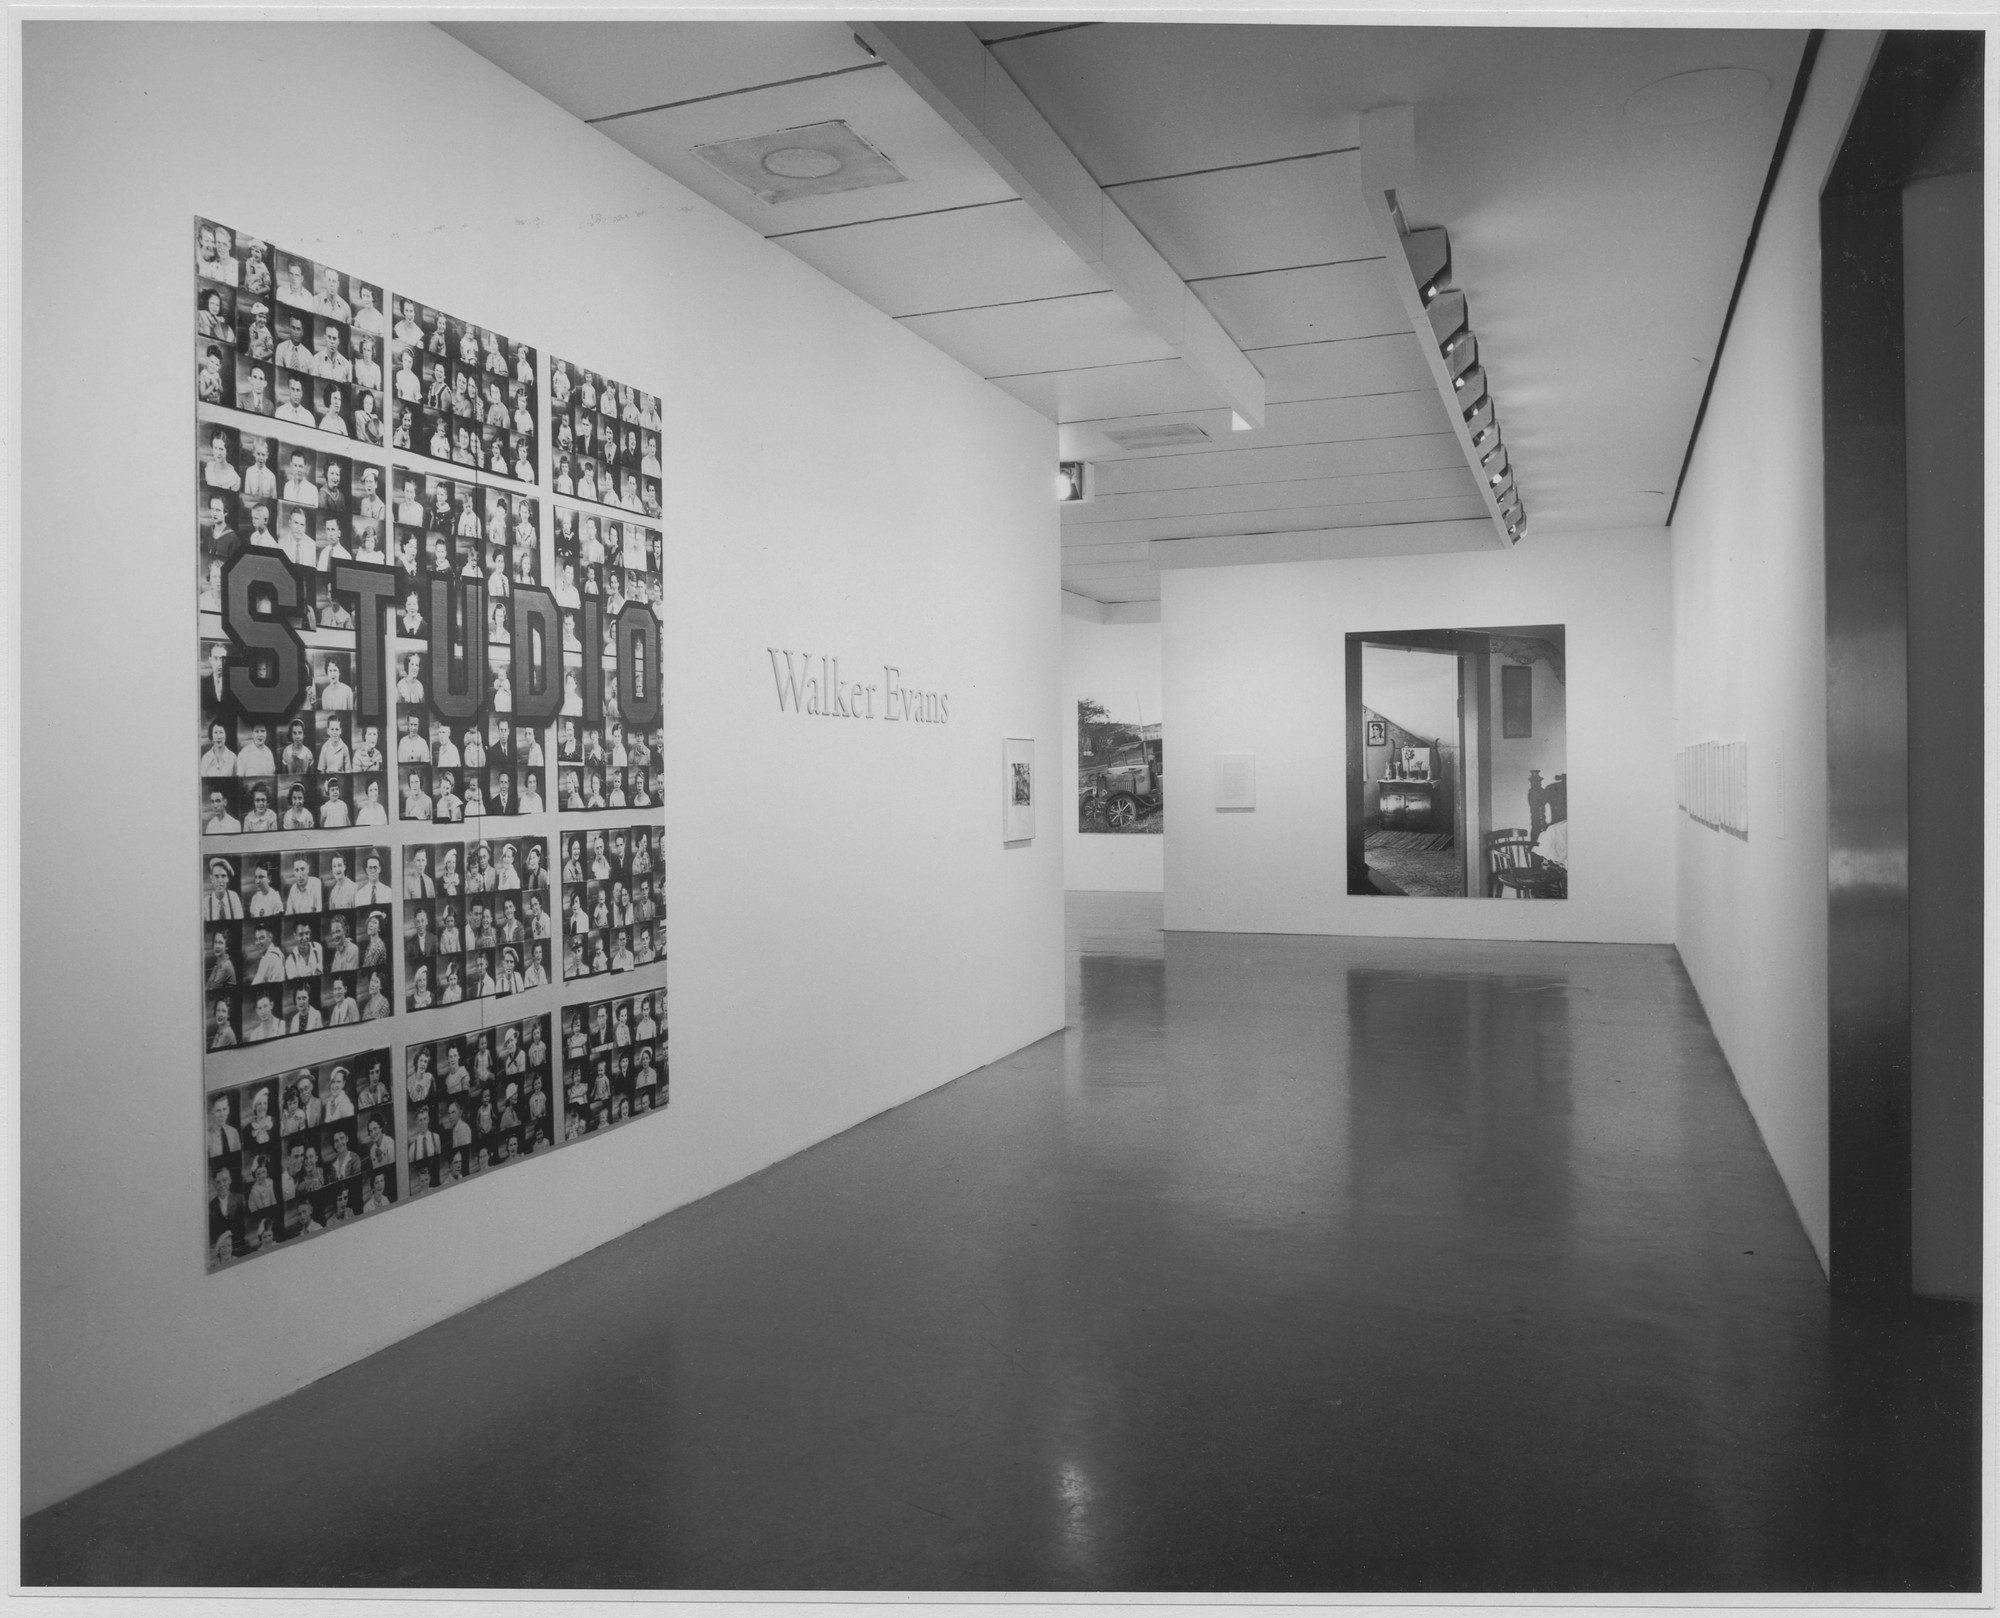 "Installation view of the exhibition, ""Walker Evans."" January 27, 1971–April 12, 1971. Photographic Archive. The Museum of Modern Art Archives, New York. IN952.1. Photograph by James Mathews."